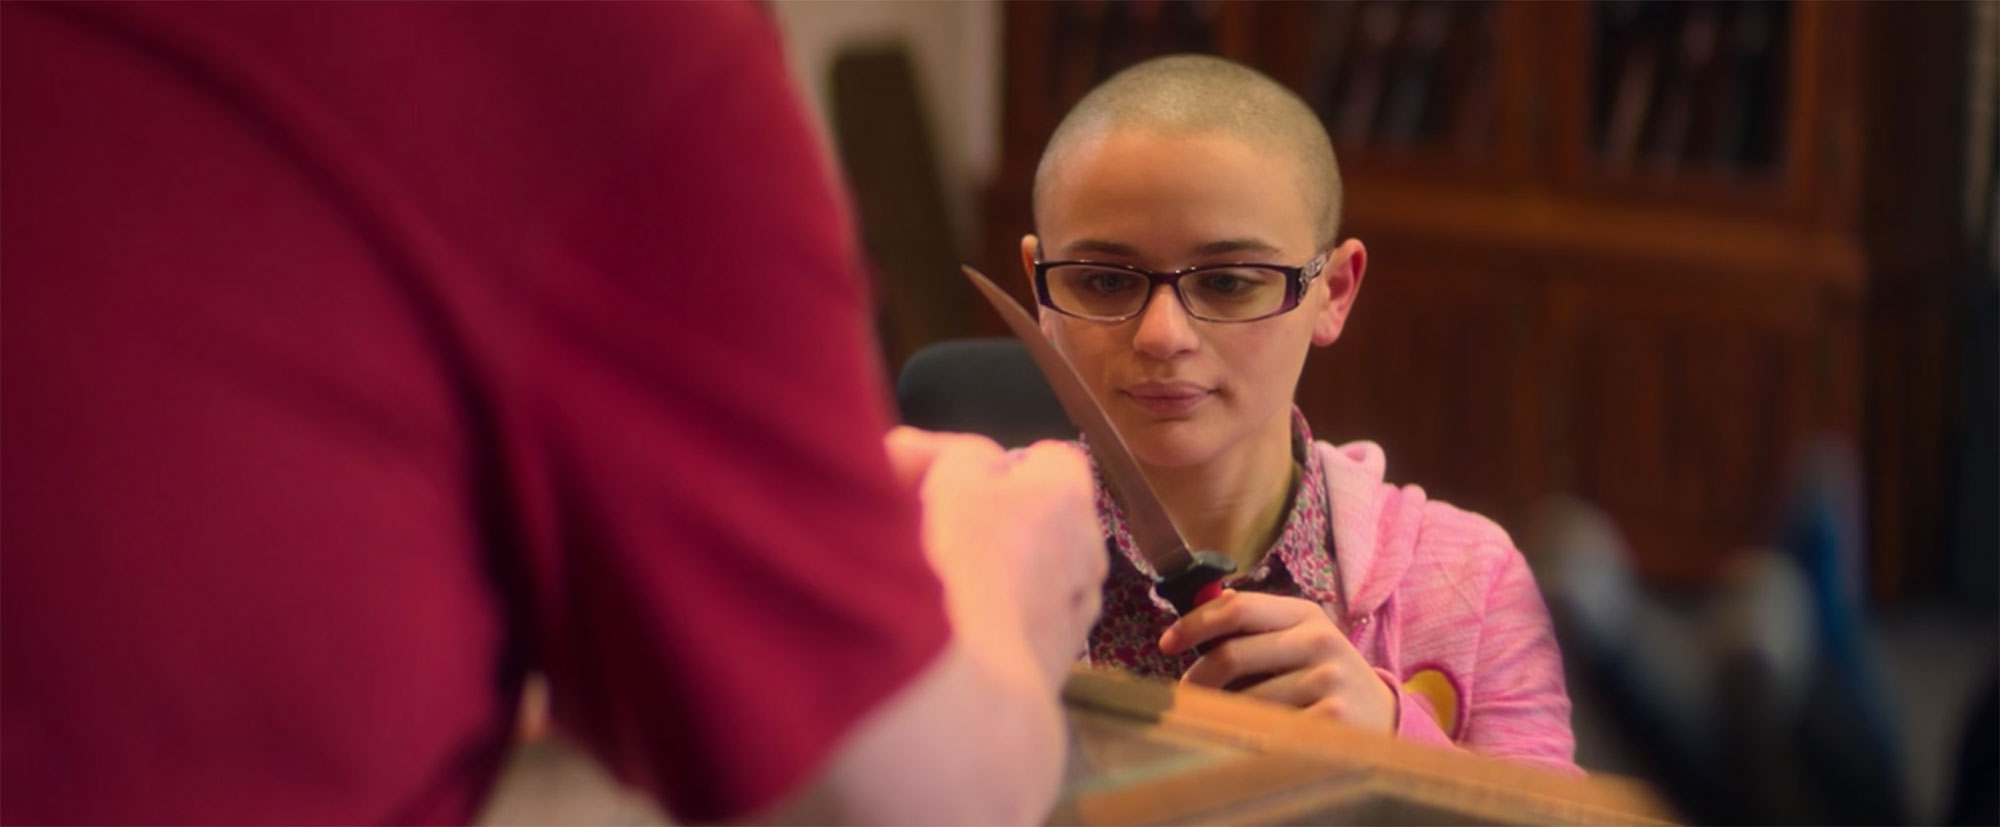 Gypsy Buys Knife in The Act - Joey King as Gypsy buys a knife in 'The Act.